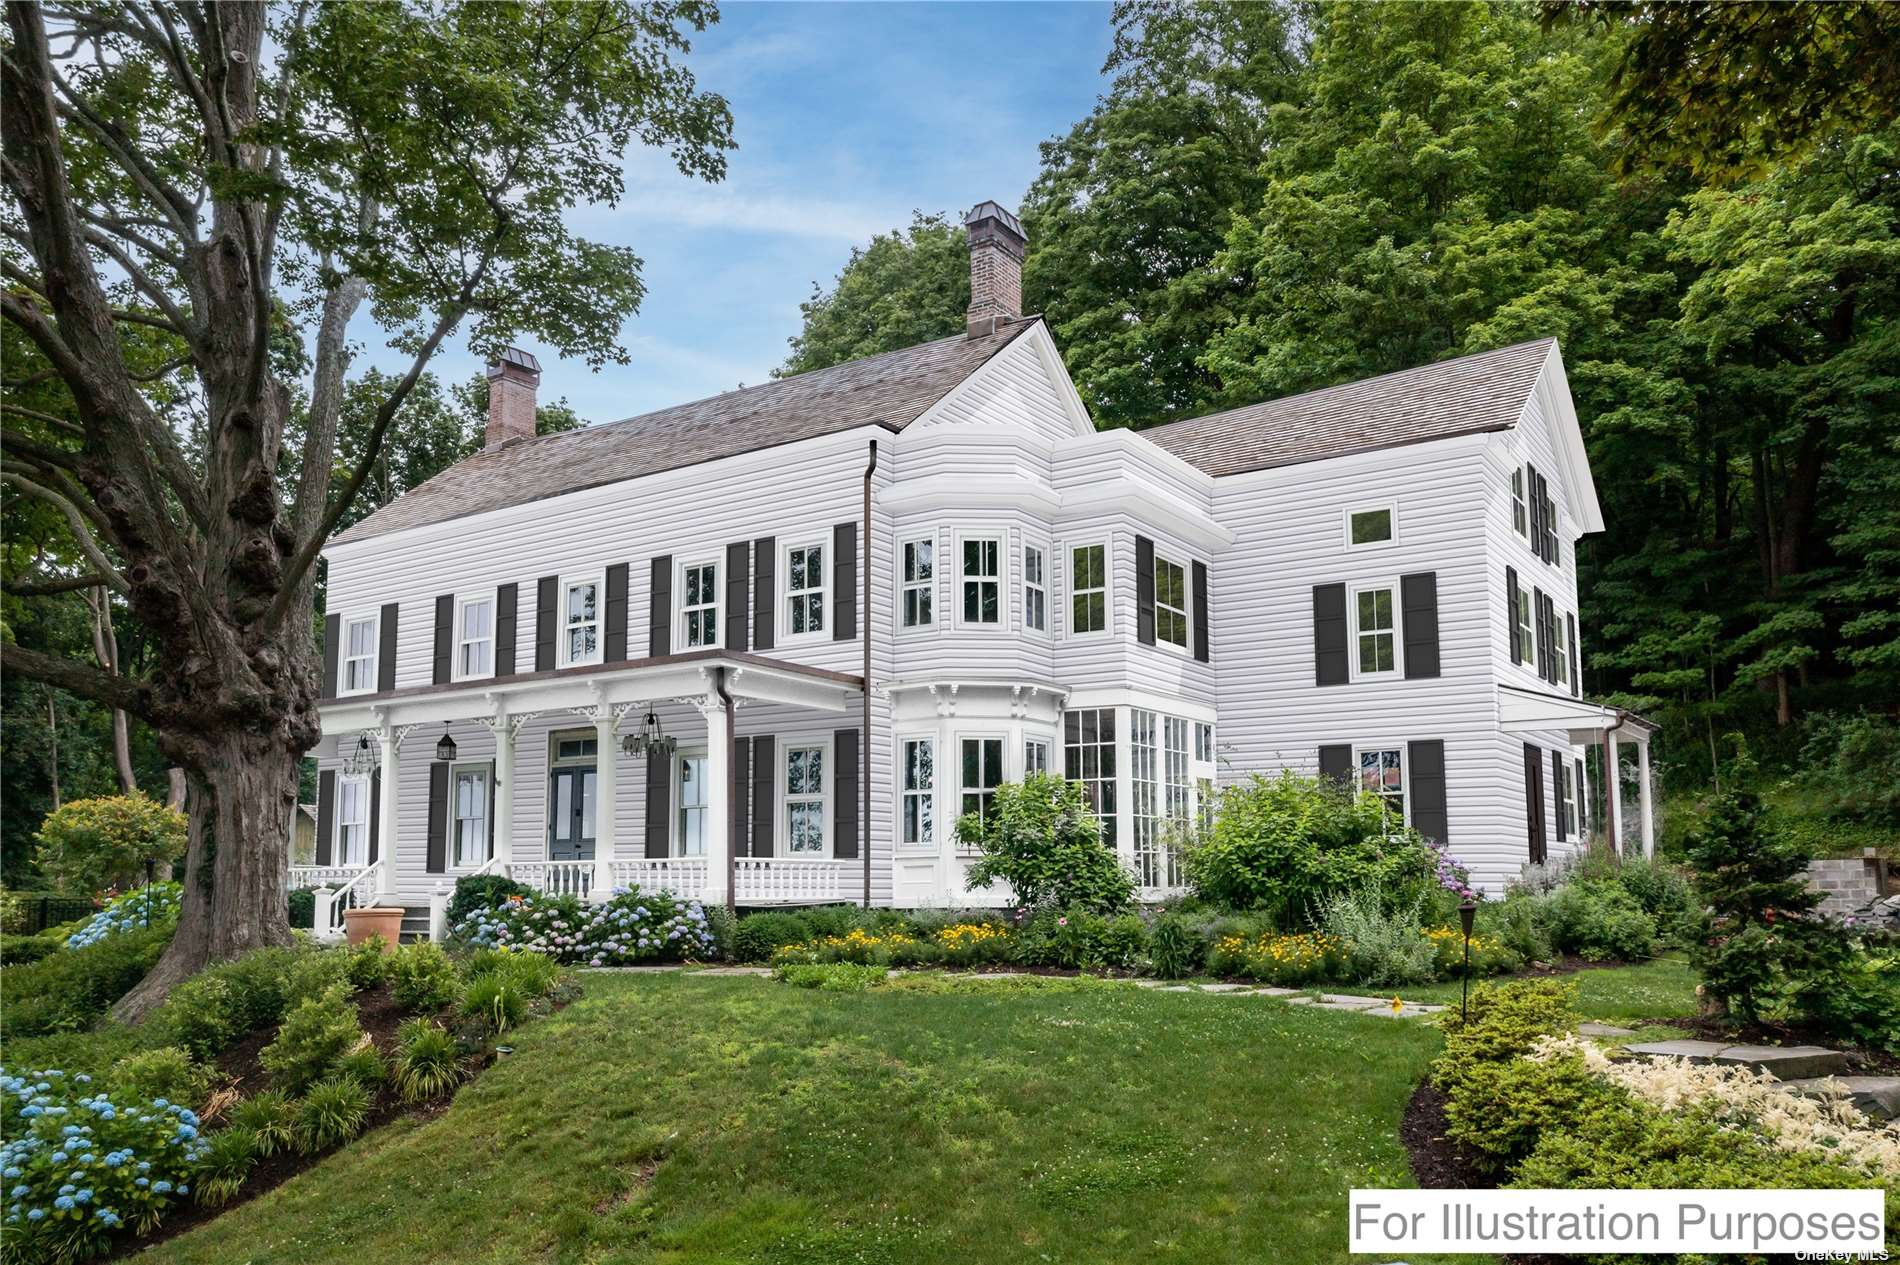 """Magnificent Custom 5 bedroom, 6.5 bath Colonial with western water views and sunsets. This completely rebuilt Reno-Mod home combines the history of Cold Spring Harbor with the most modern and high-quality renovation. Experience luxury in this 5000sq ft home featuring kitchen w/water views, expansive center island, coffered ceiling, mudroom and glass doors lead to a wrap-around porch. The elegant foyer features a two-story staircase with glass walls leading to 5 en-suite bedrooms. Master bedrm with stunning water view includes a gas fireplace and balcony. A true masterpiece boasting a rare third floor w/5th bedrm, full bath, bonus room, study w/fireplace and balcony. Relax in the Elegant Dining Rm w/double sided gas fireplace. Another special feature of """"Harbor View"""" is the walkout basement with 10' ceilings and cedar temperature-controlled wine cellar. Set on 2 landscaped acres, this home offers plenty of privacy, Gunite pool, brick patio, 2 firepits. Beach/Mooring(dues). CSH SD#2"""